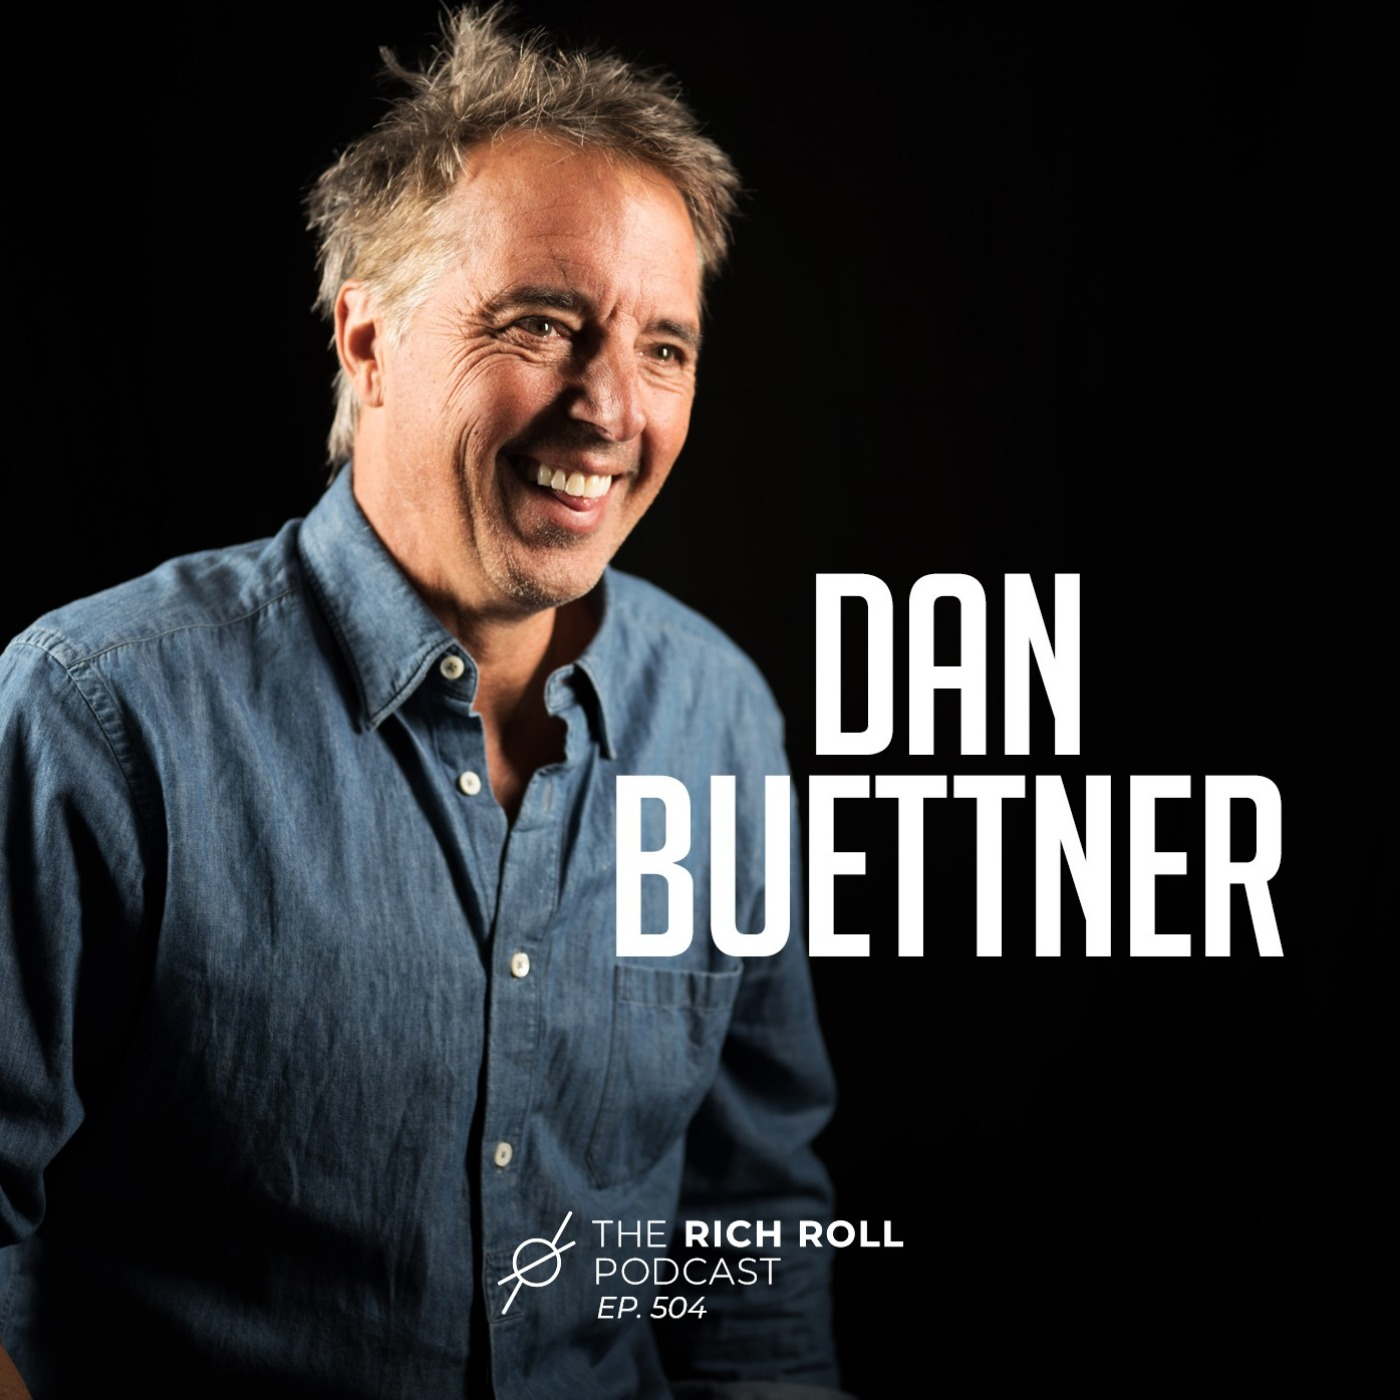 Dan Buettner On The Secrets For Living Long & Well